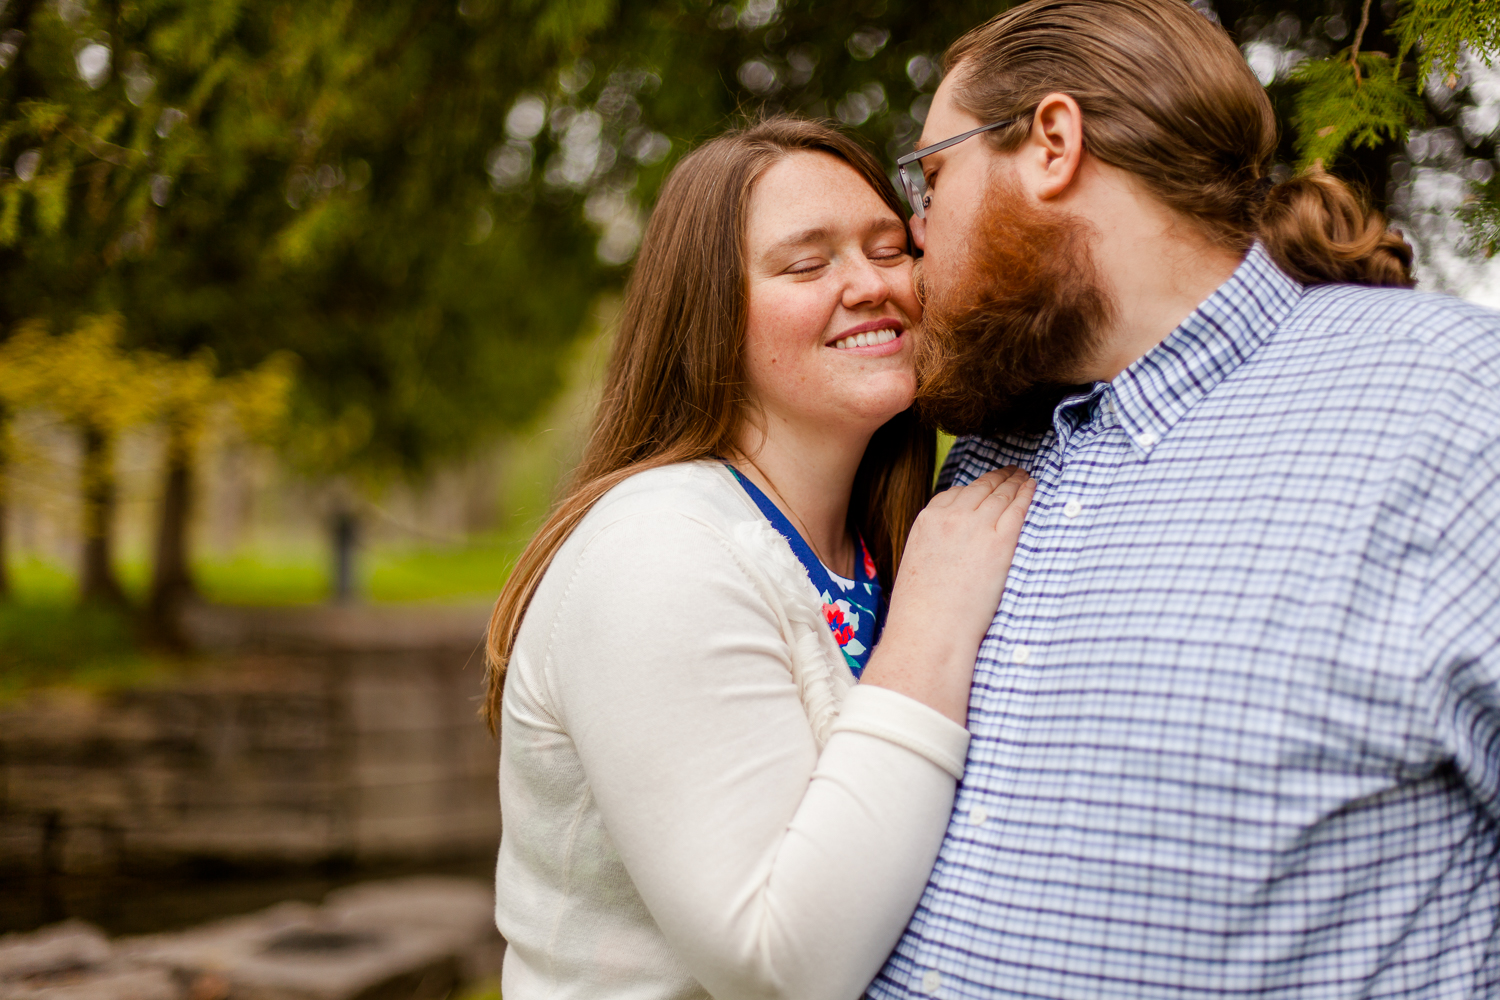 A woman in a white sweater and a floral dress smiles as a man in a blue plaid shirt gives her a kiss. The background is blurry trees. The image is taken by a Syracuse Wedding Photographer.